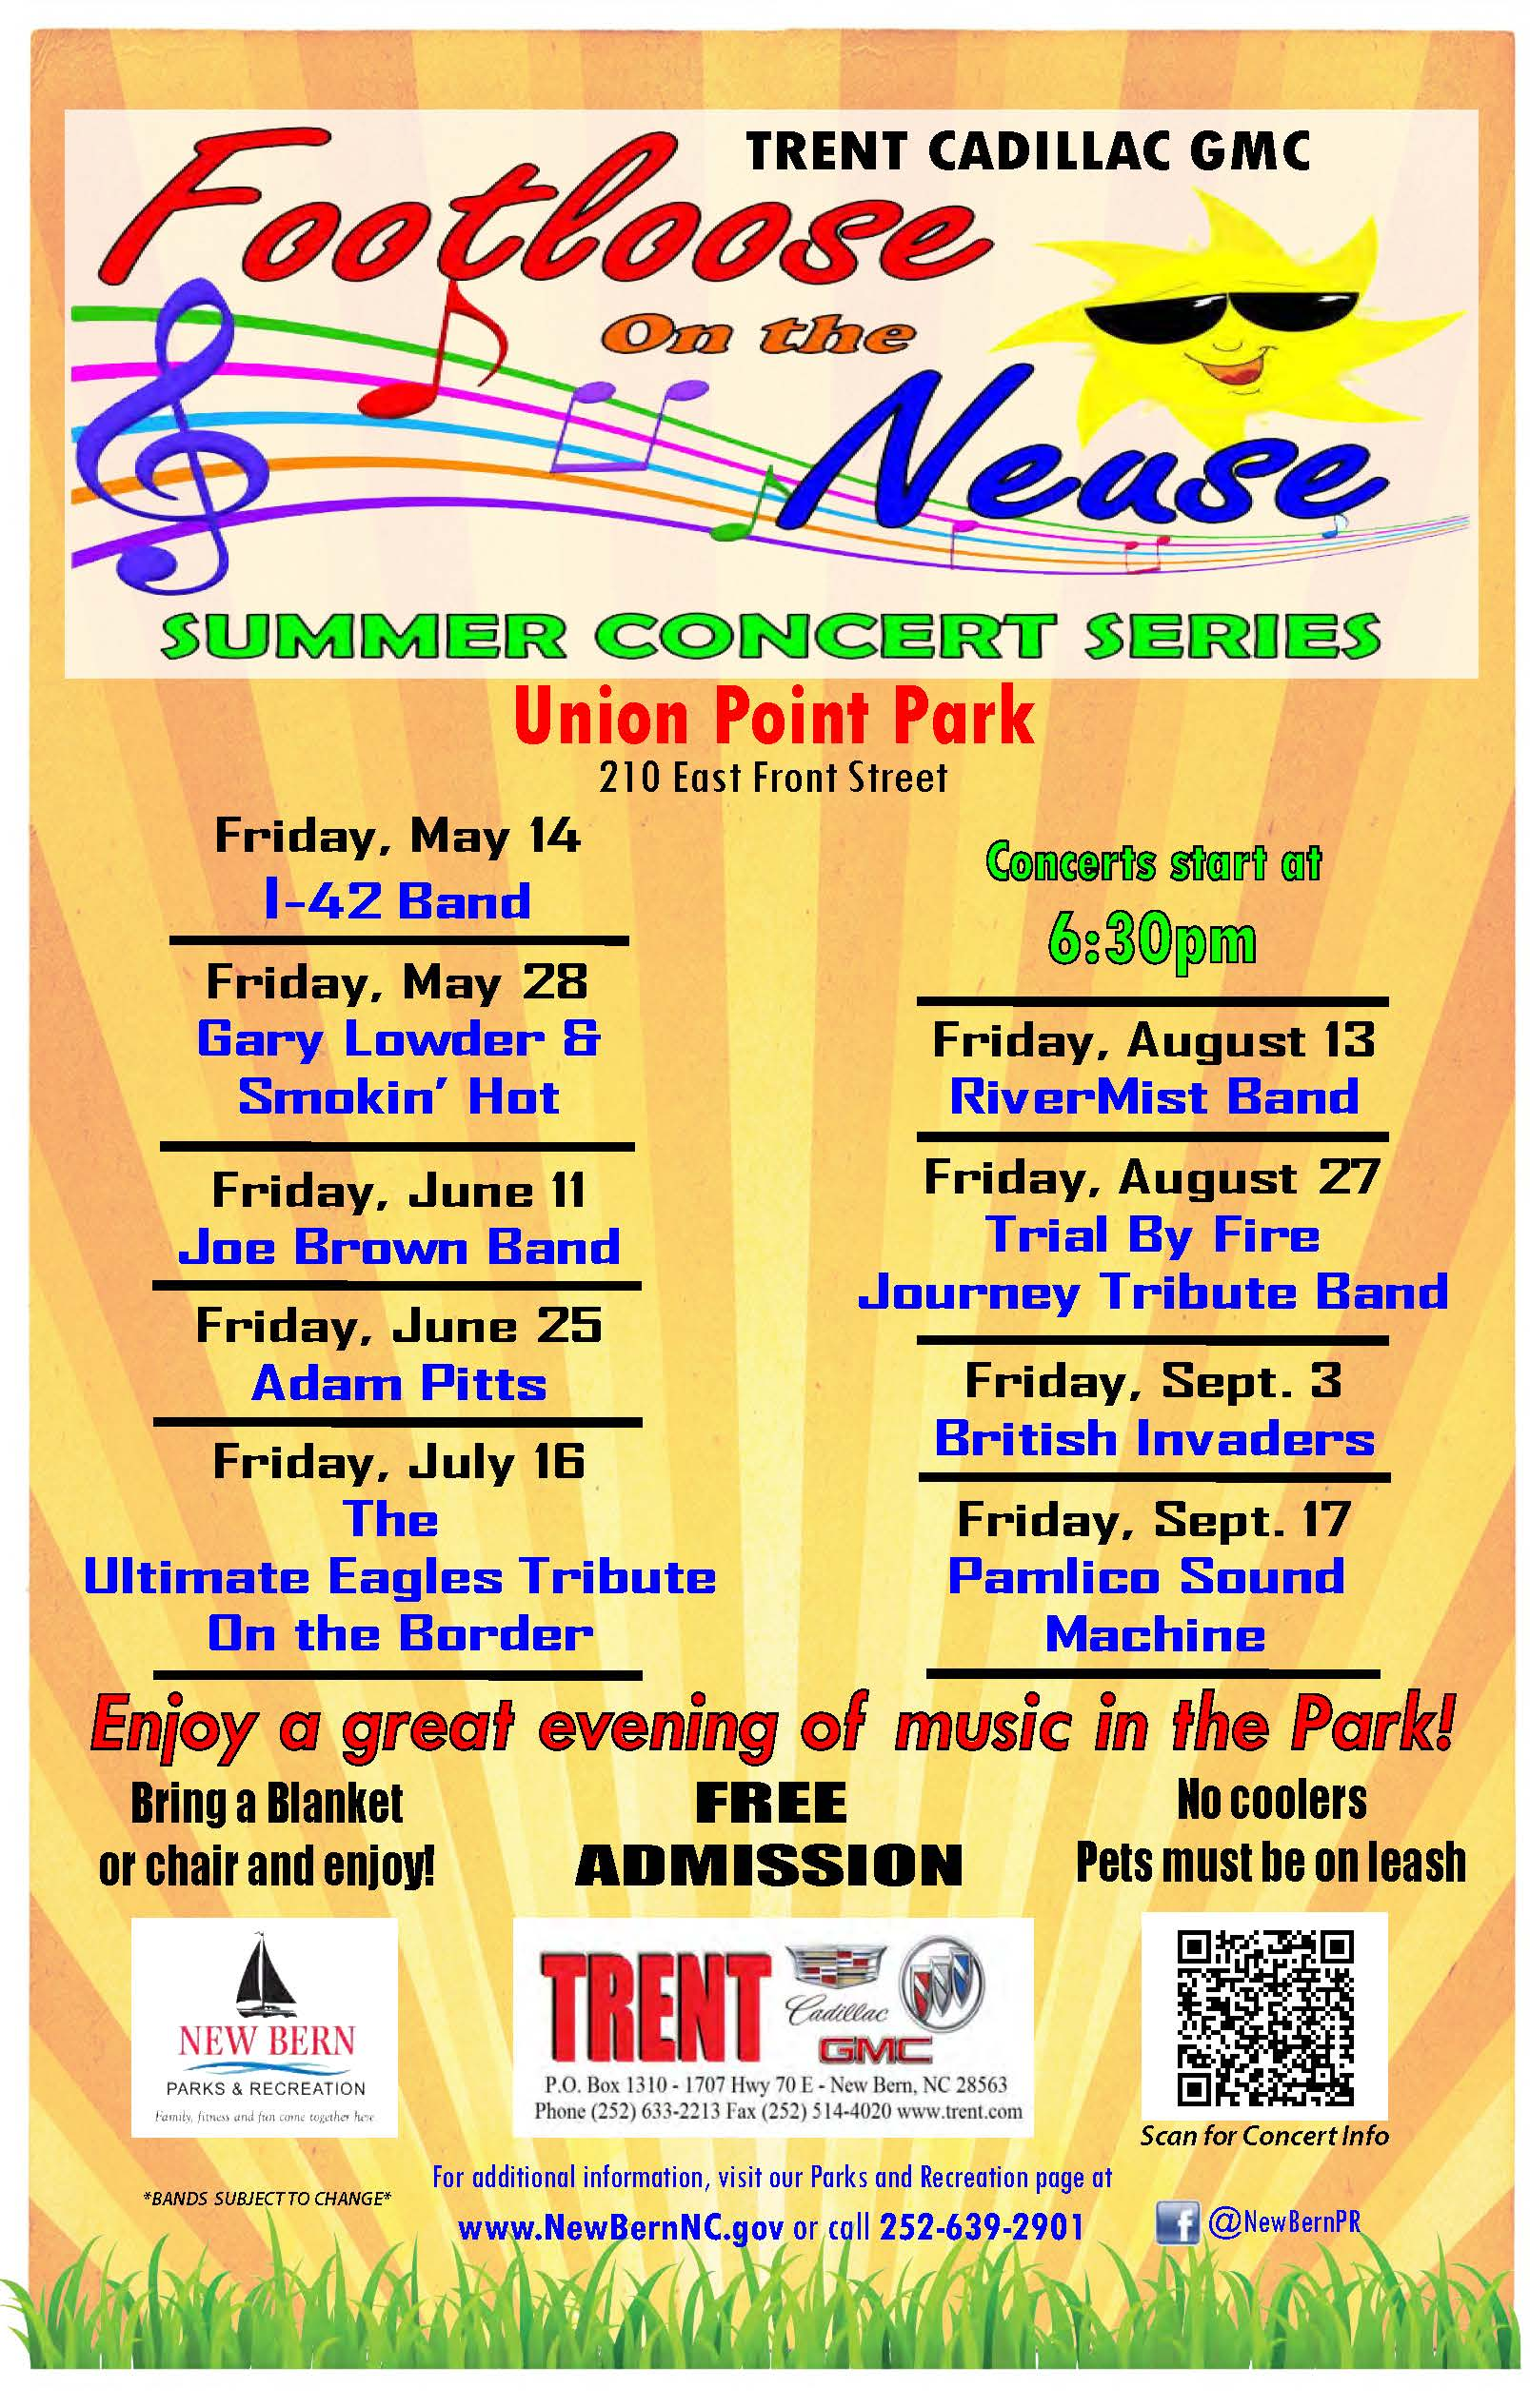 Footloose On The Neuse: Summer Concert Series @ Union Point Park in New Bern